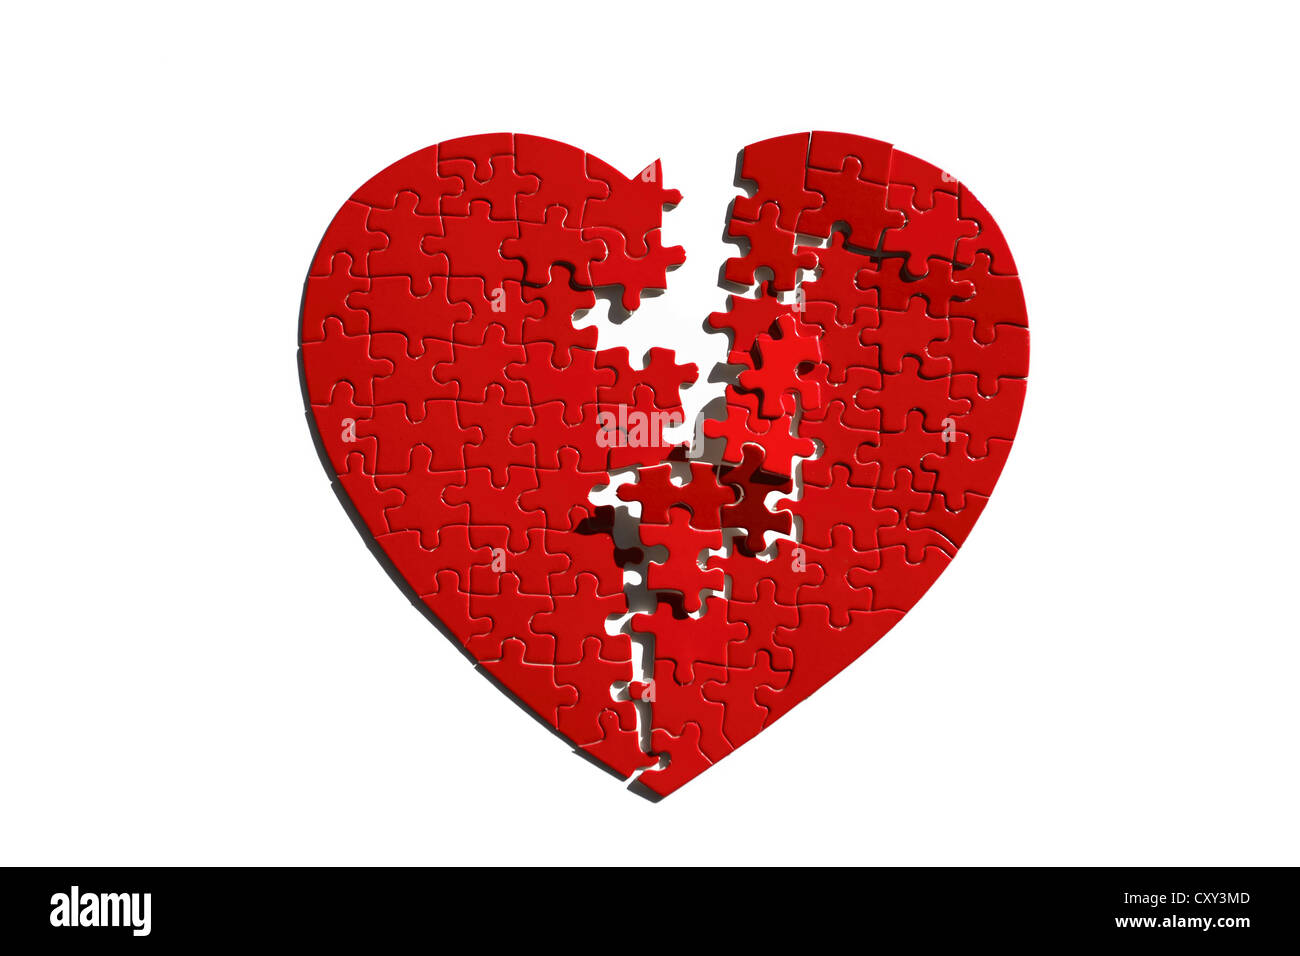 Red heart-shaped jigsaw puzzle, torn in half - Stock Image